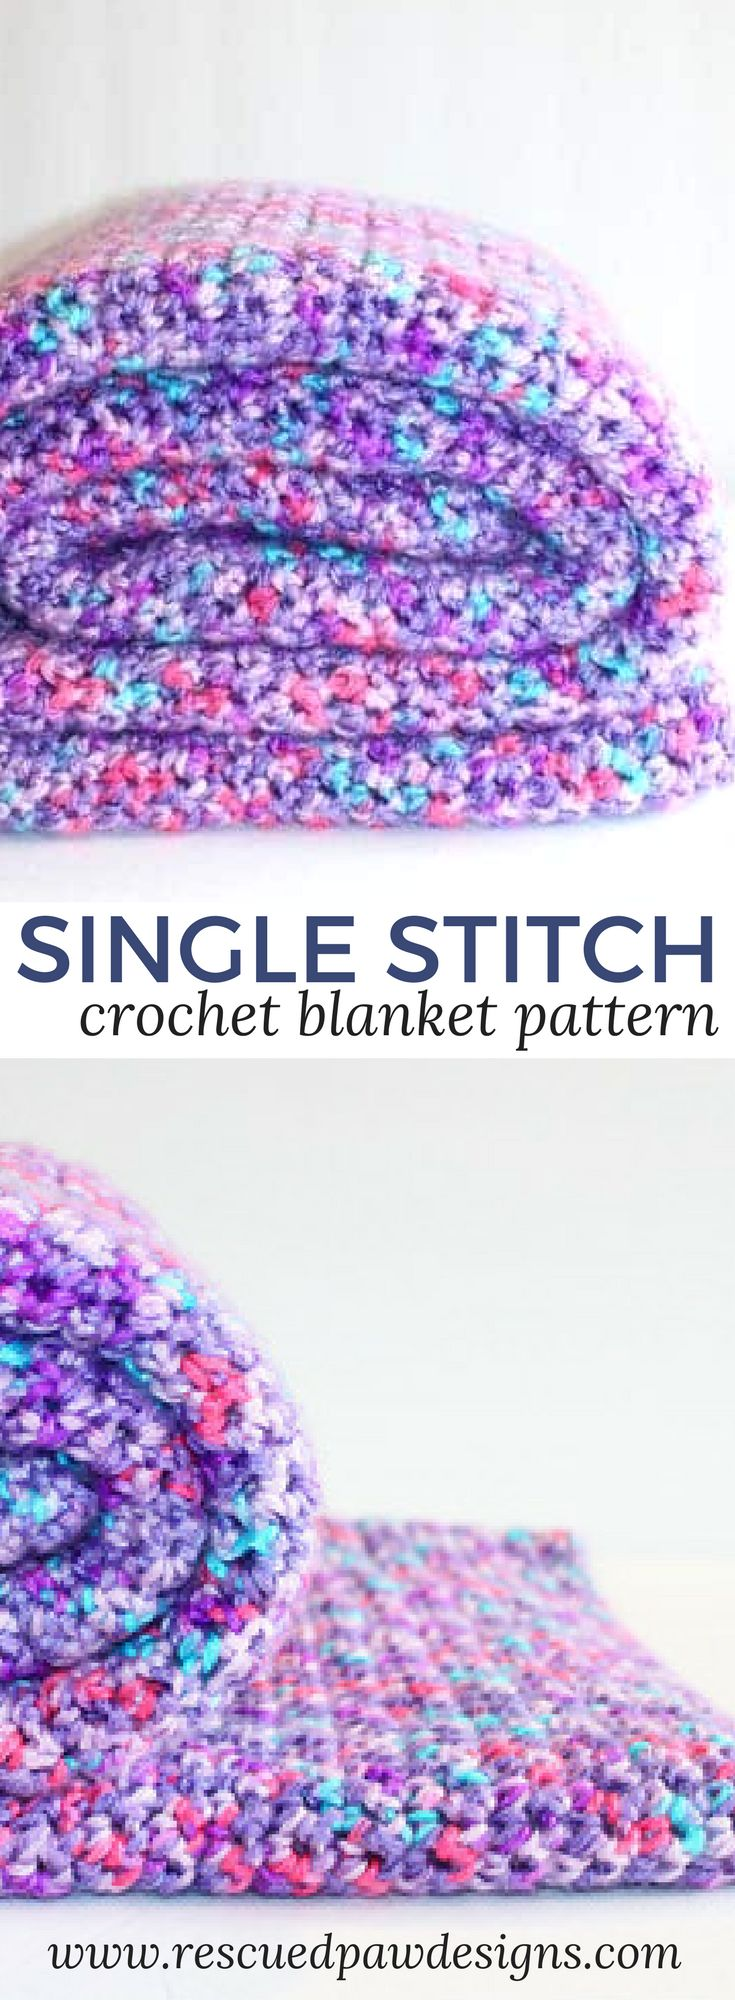 157 best Crochet Blankets images on Pinterest | Blankets, Crochet ...